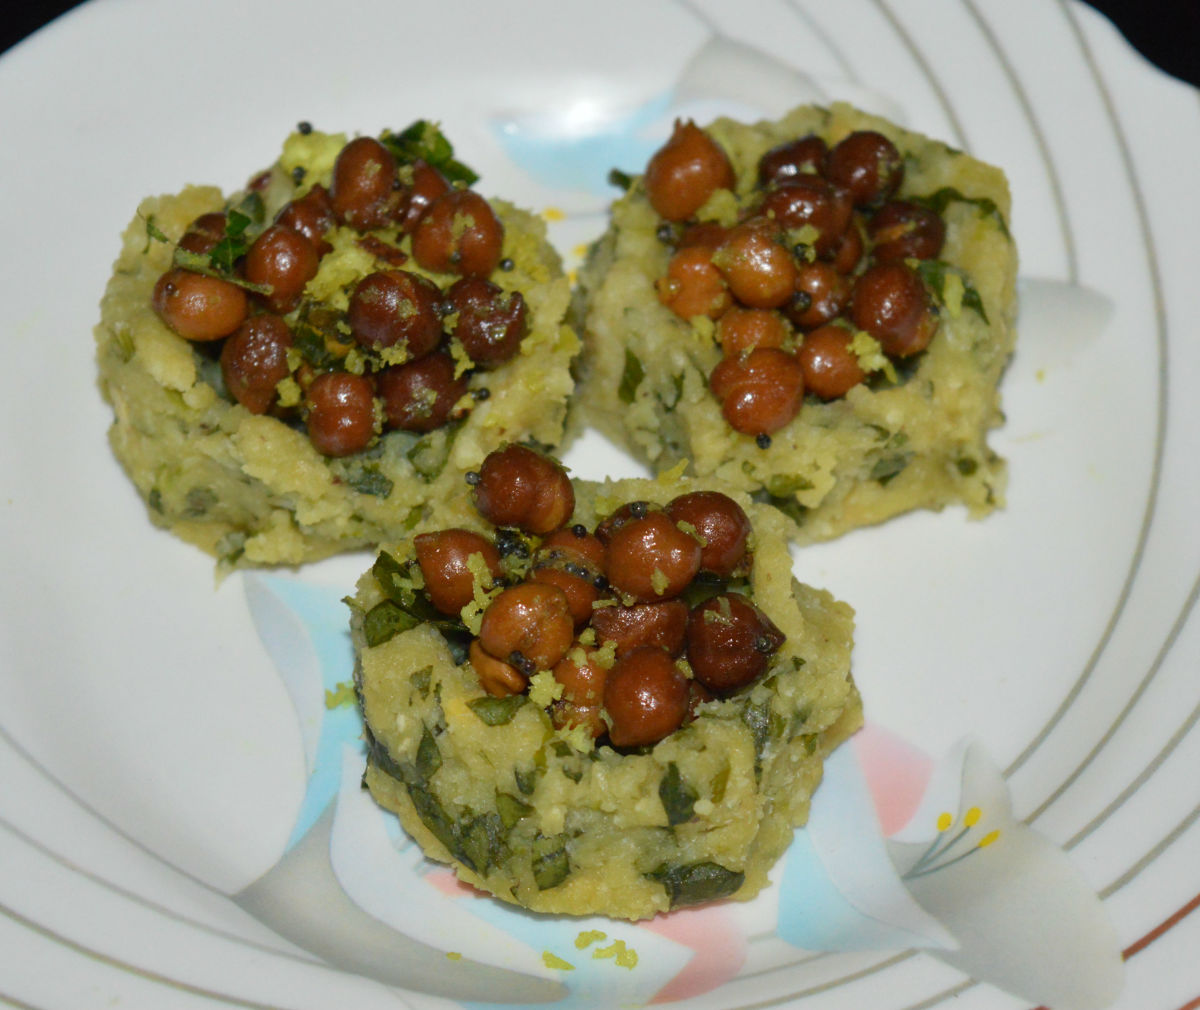 Steamed Lentil Fenugreek Baskets With Chickpea Salad